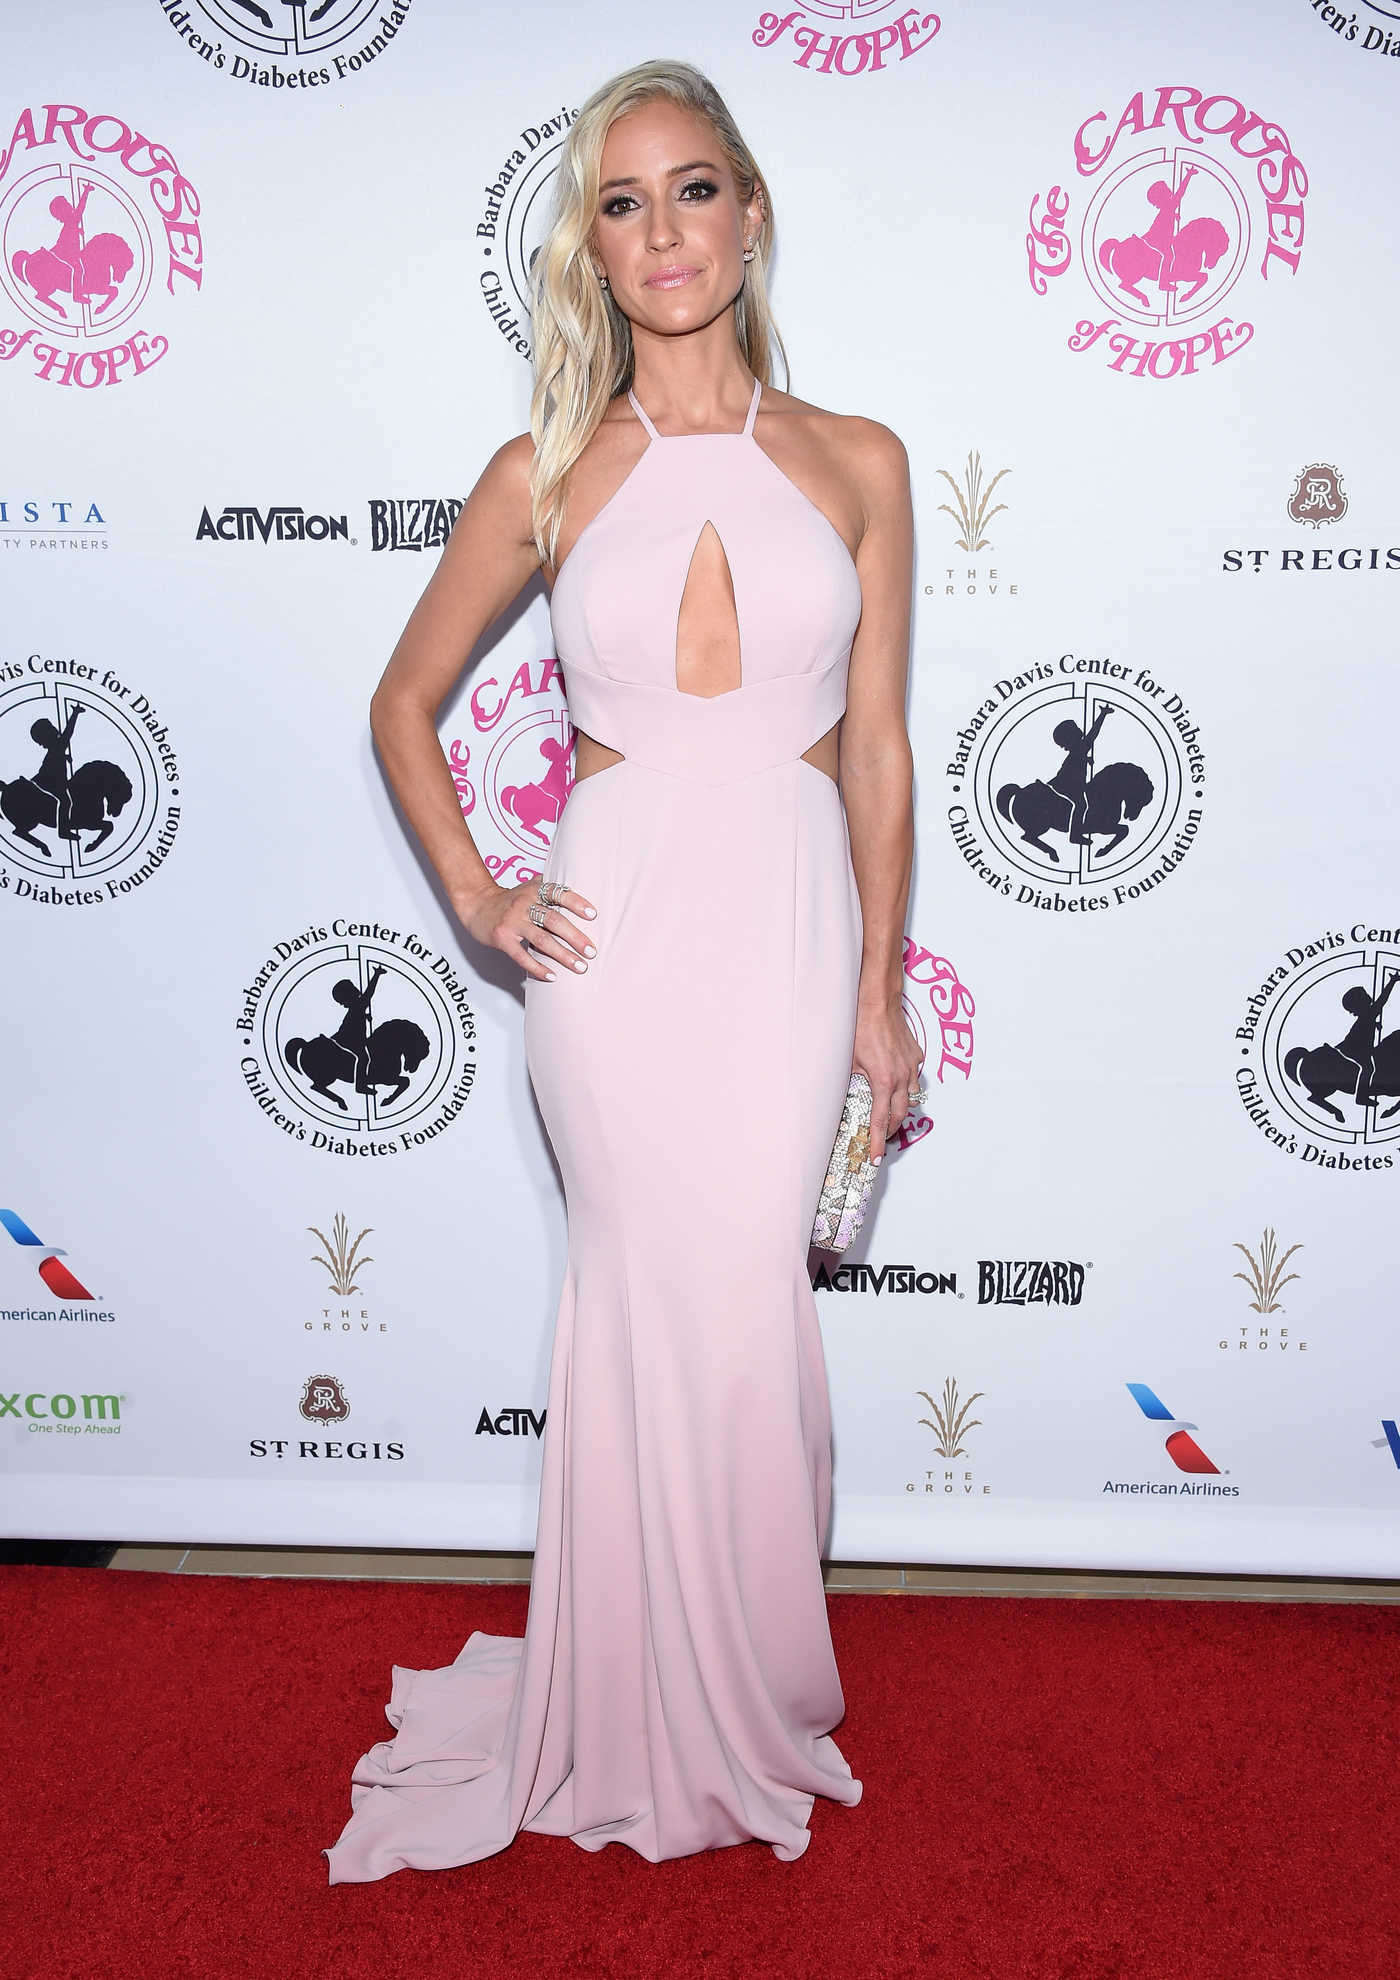 Kristin Cavallari at the Carousel of Hope Ball in Beverly Hills 10/08/2016